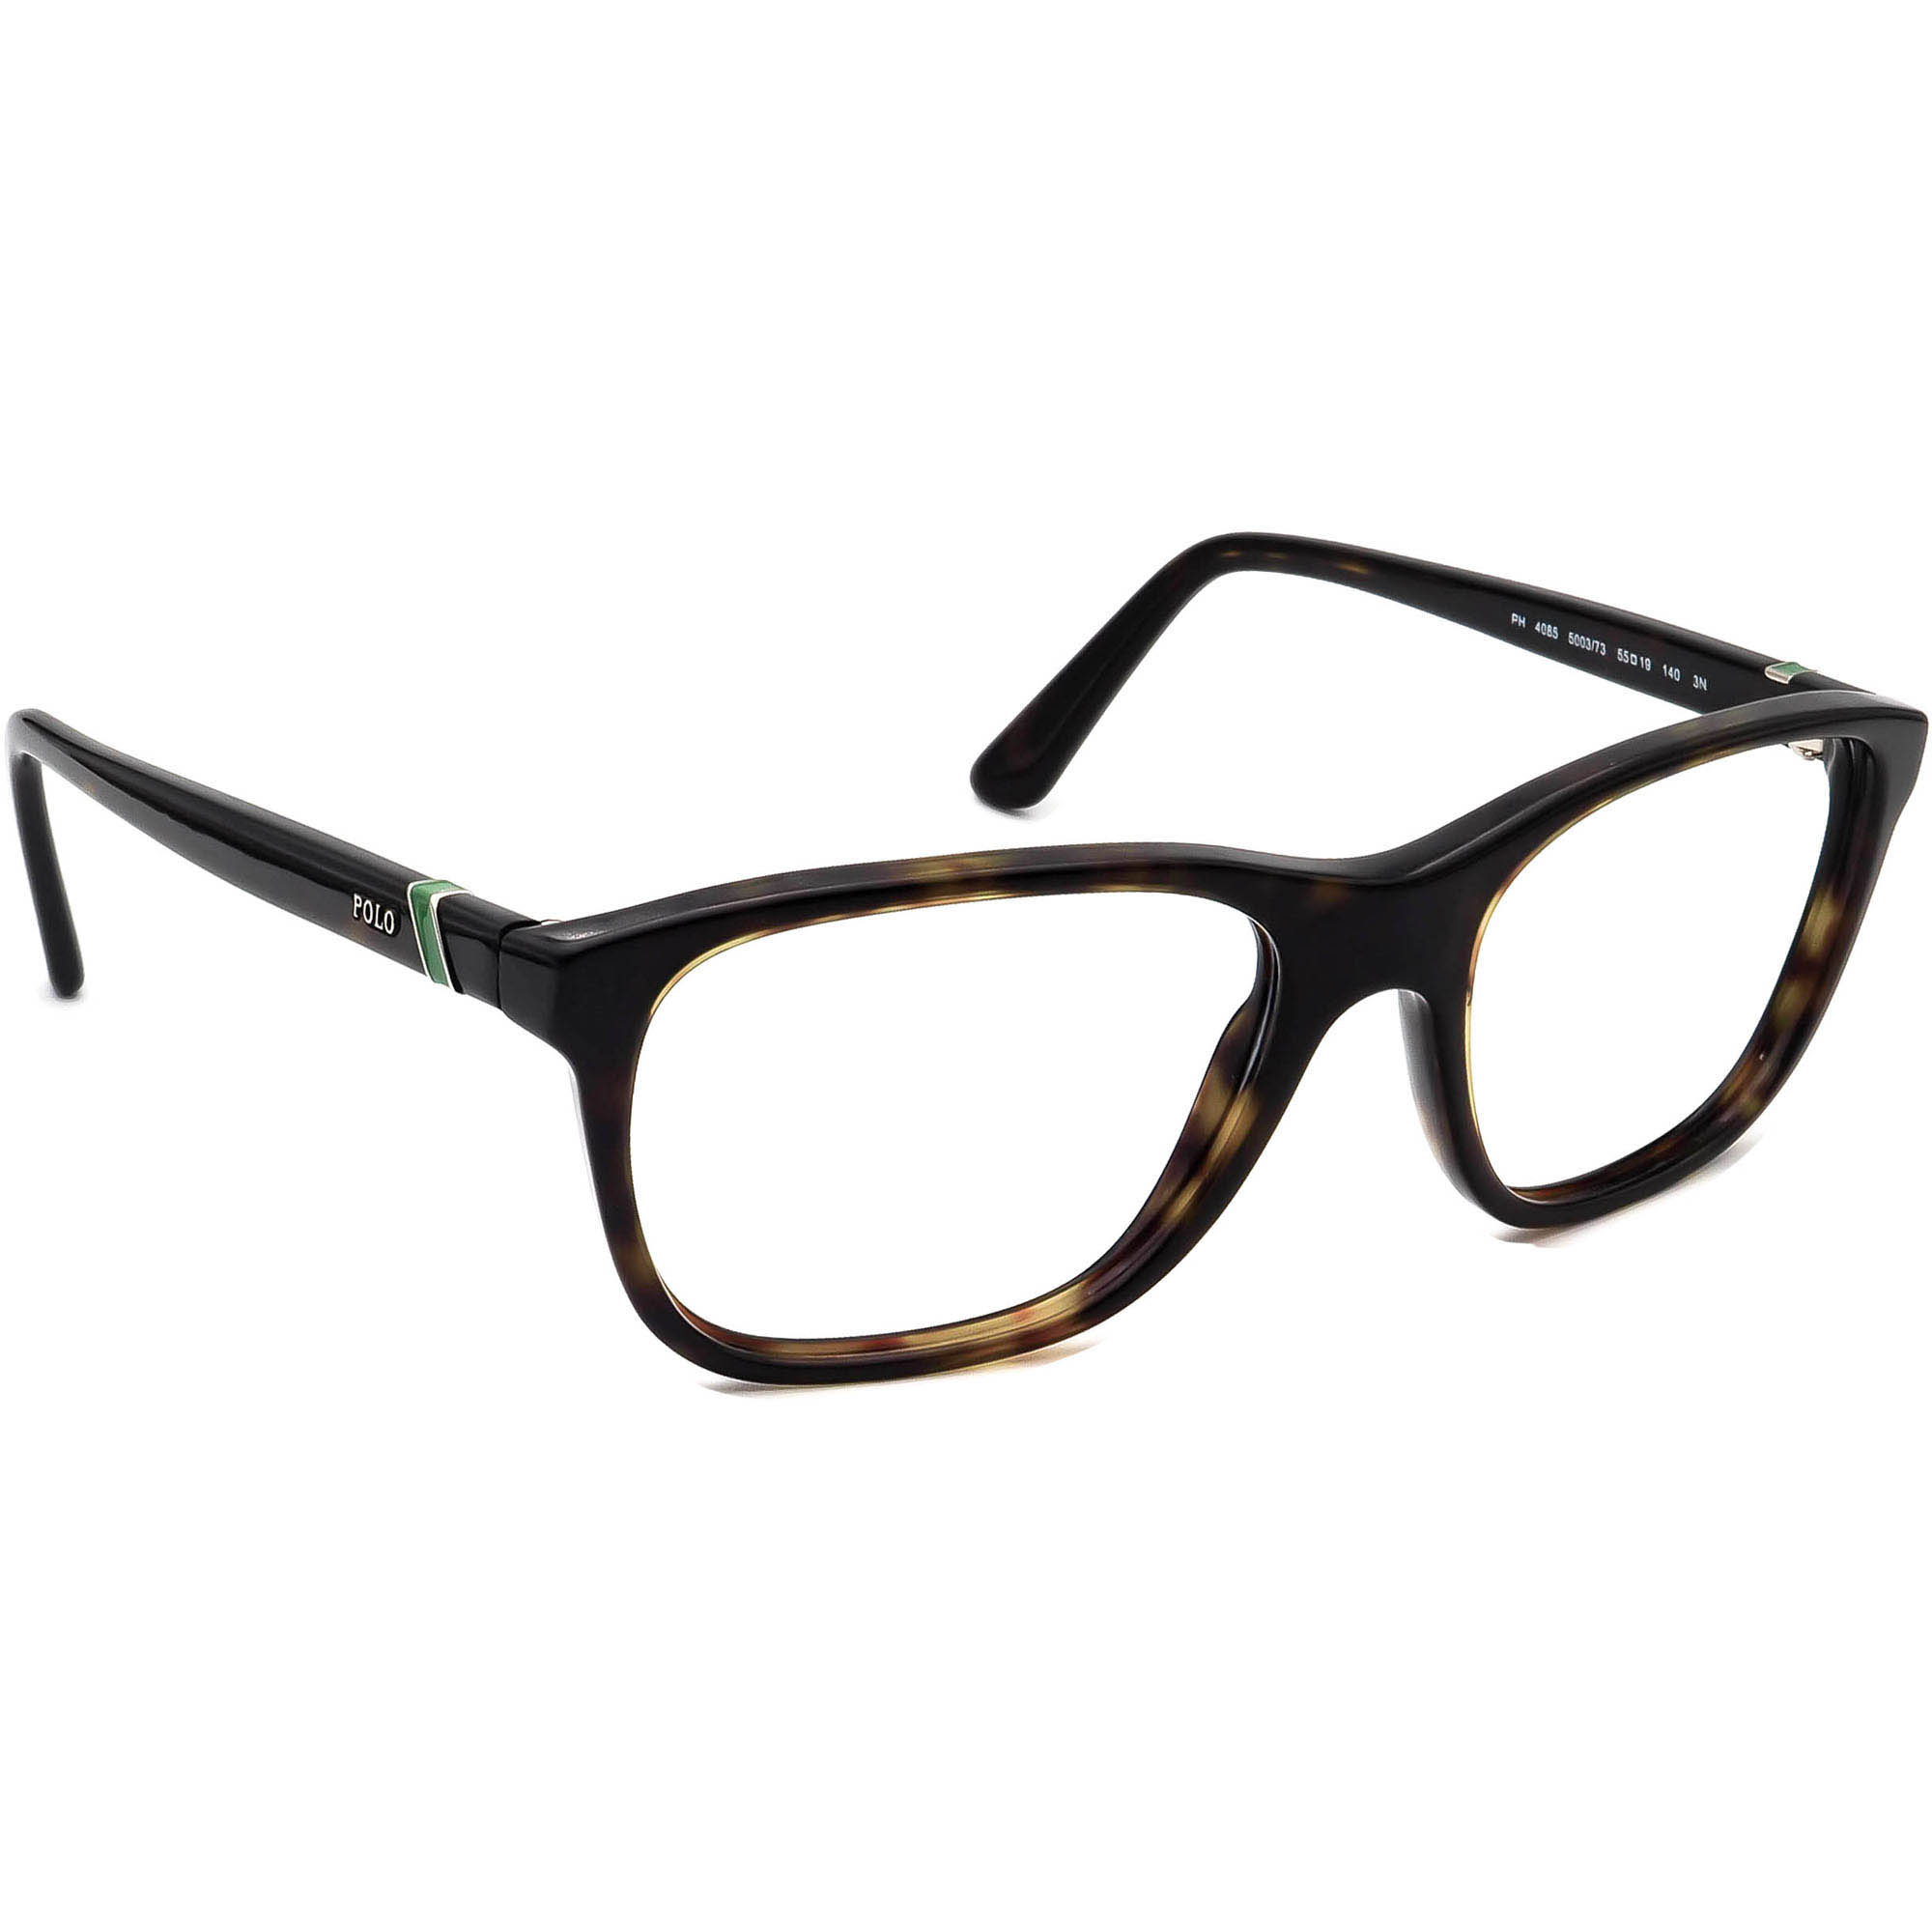 Ralph Lauren Polo PH 4085 5003/73 Sunglasses Frame Only